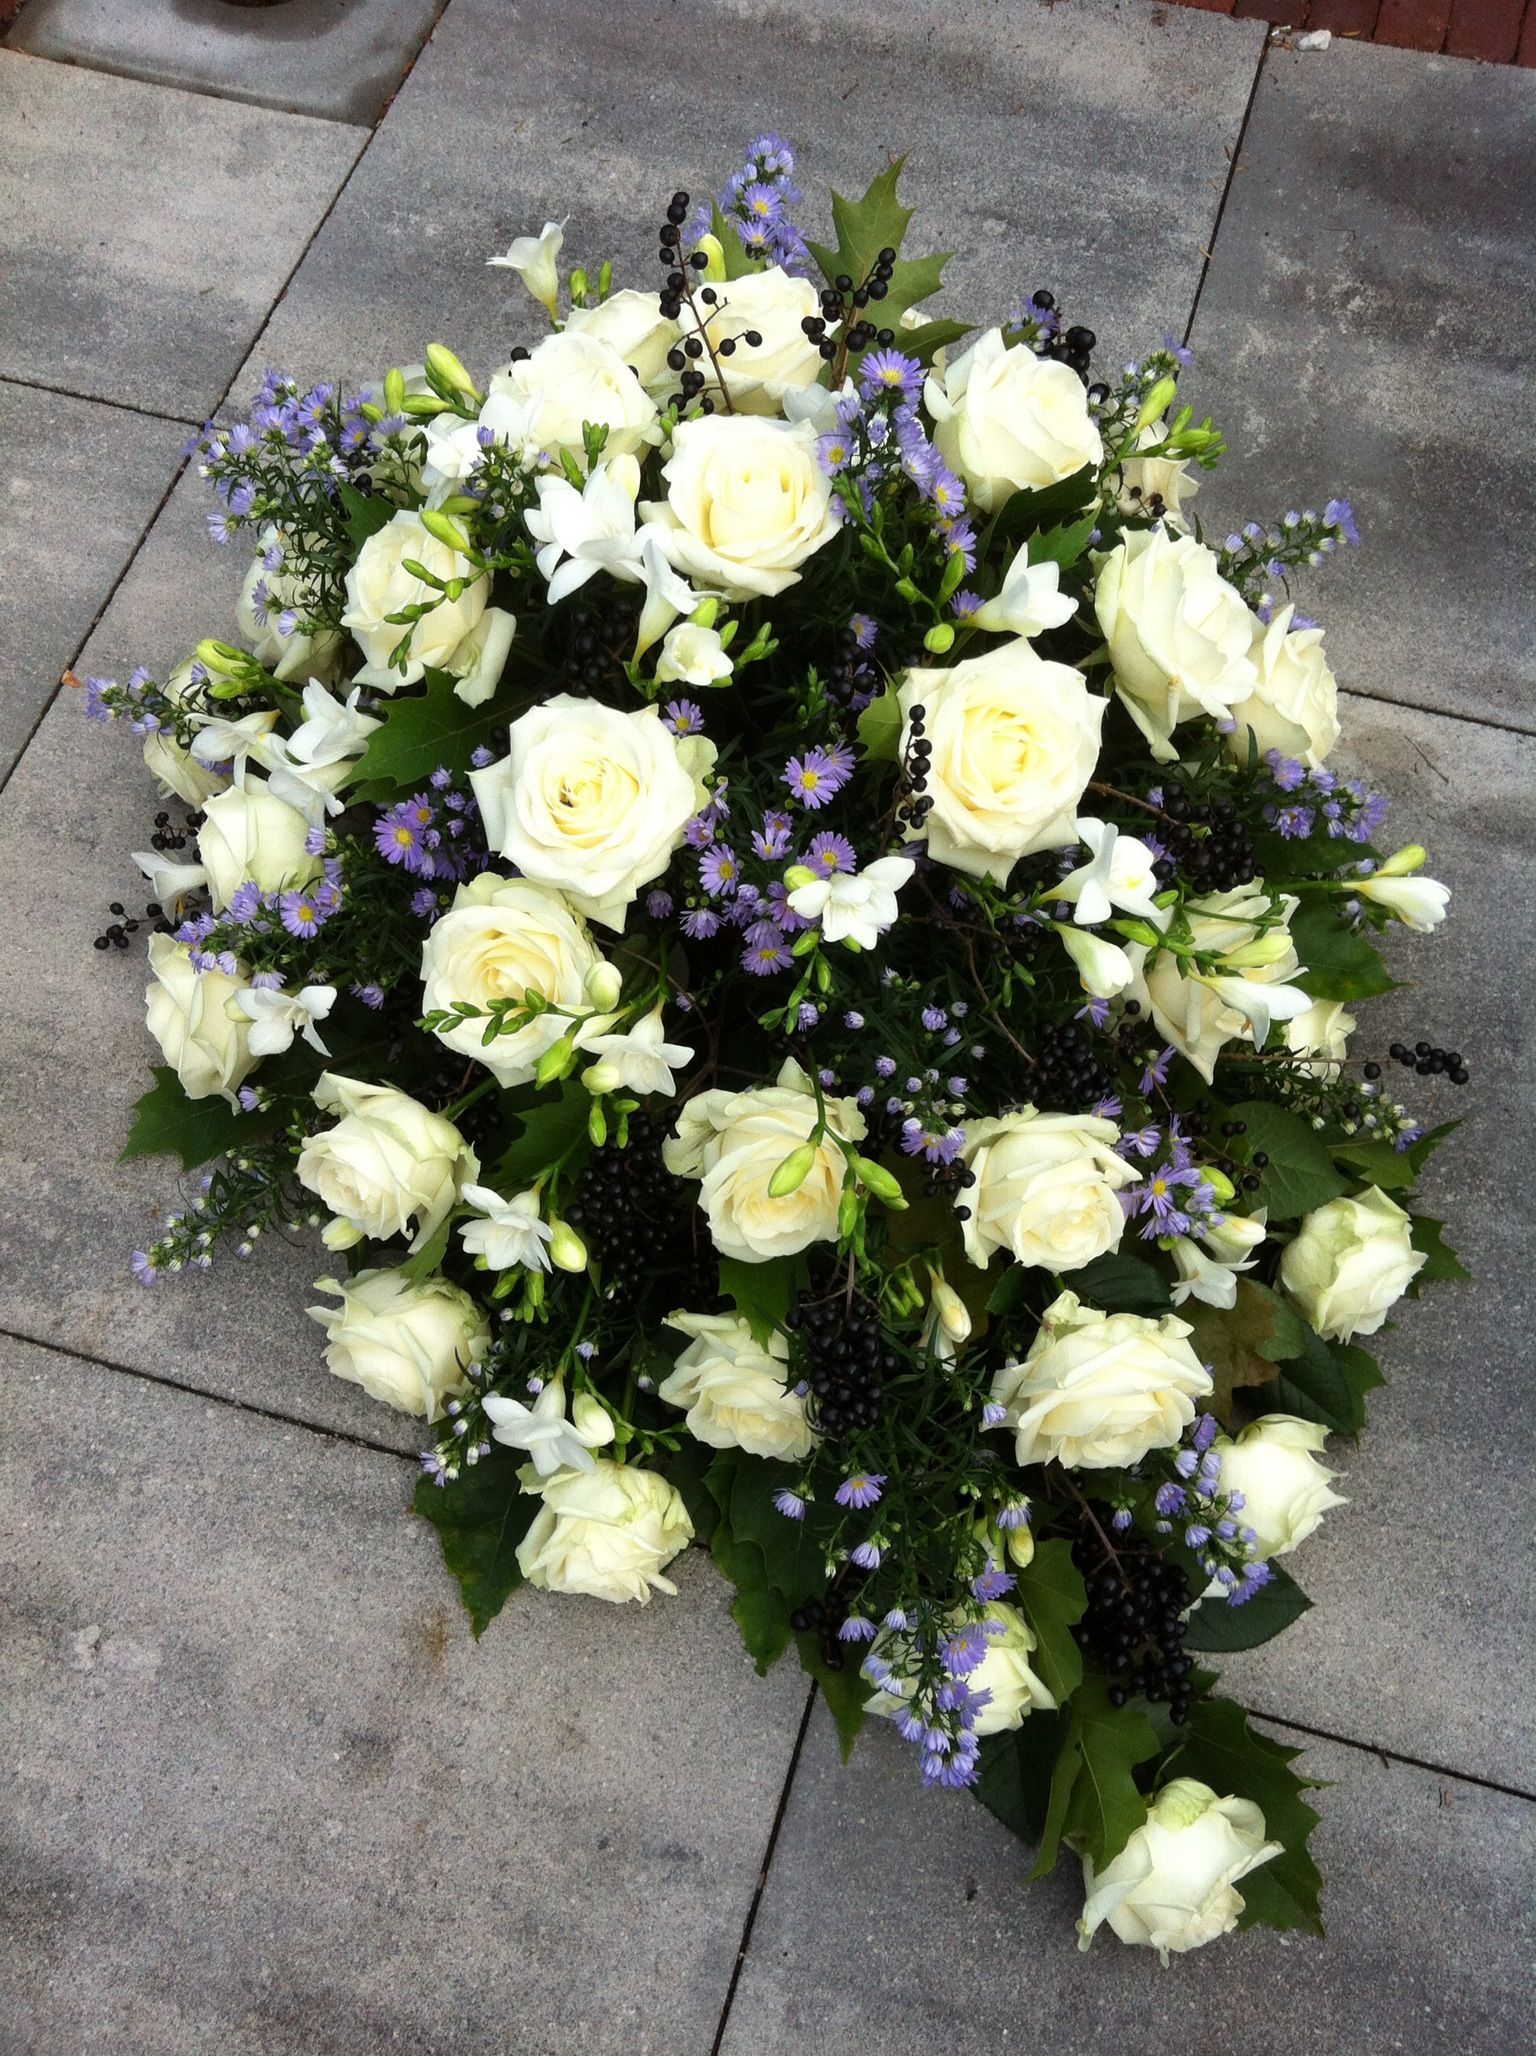 Purplewhite sympathy flowers (With images) Funeral